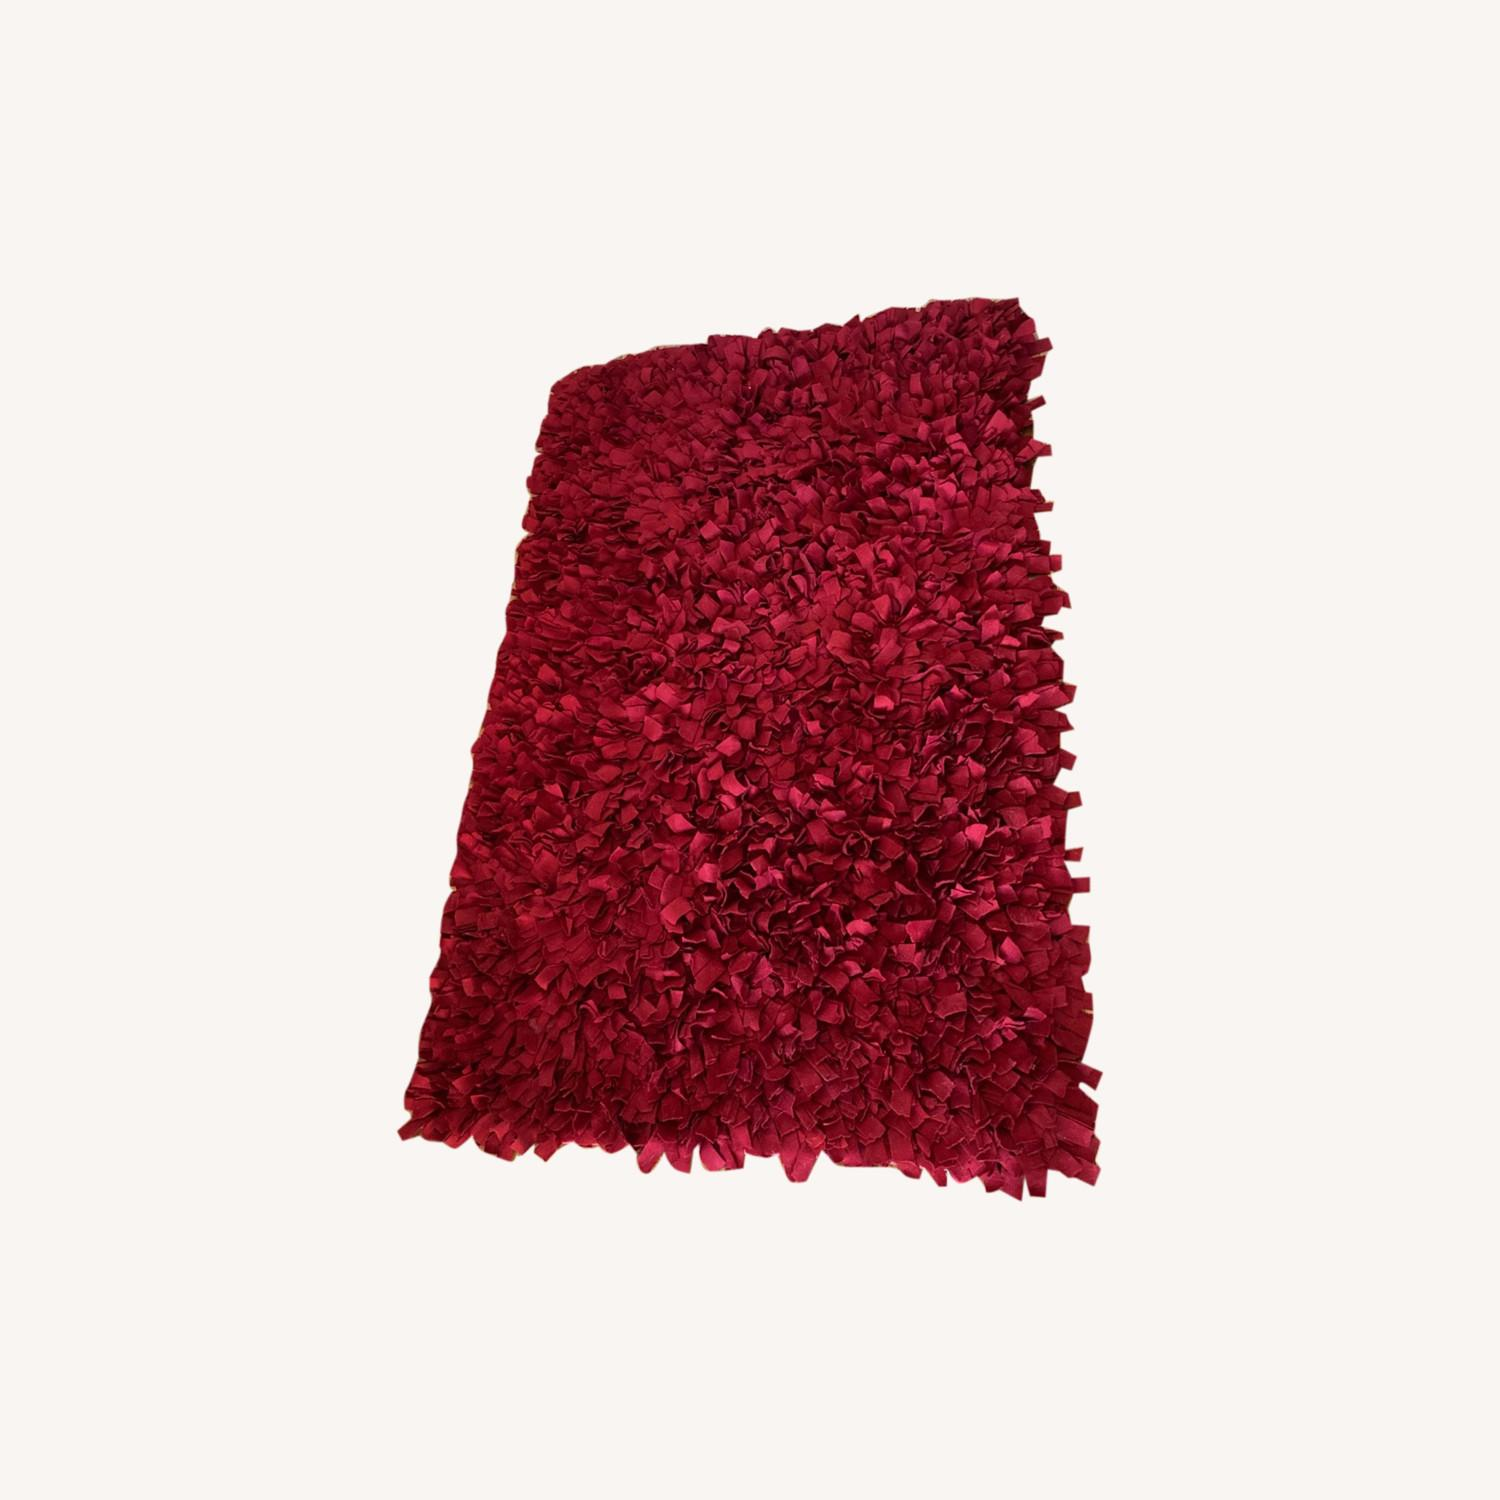 ABC Carpet & Home Red Wool Felted Rug - image-0